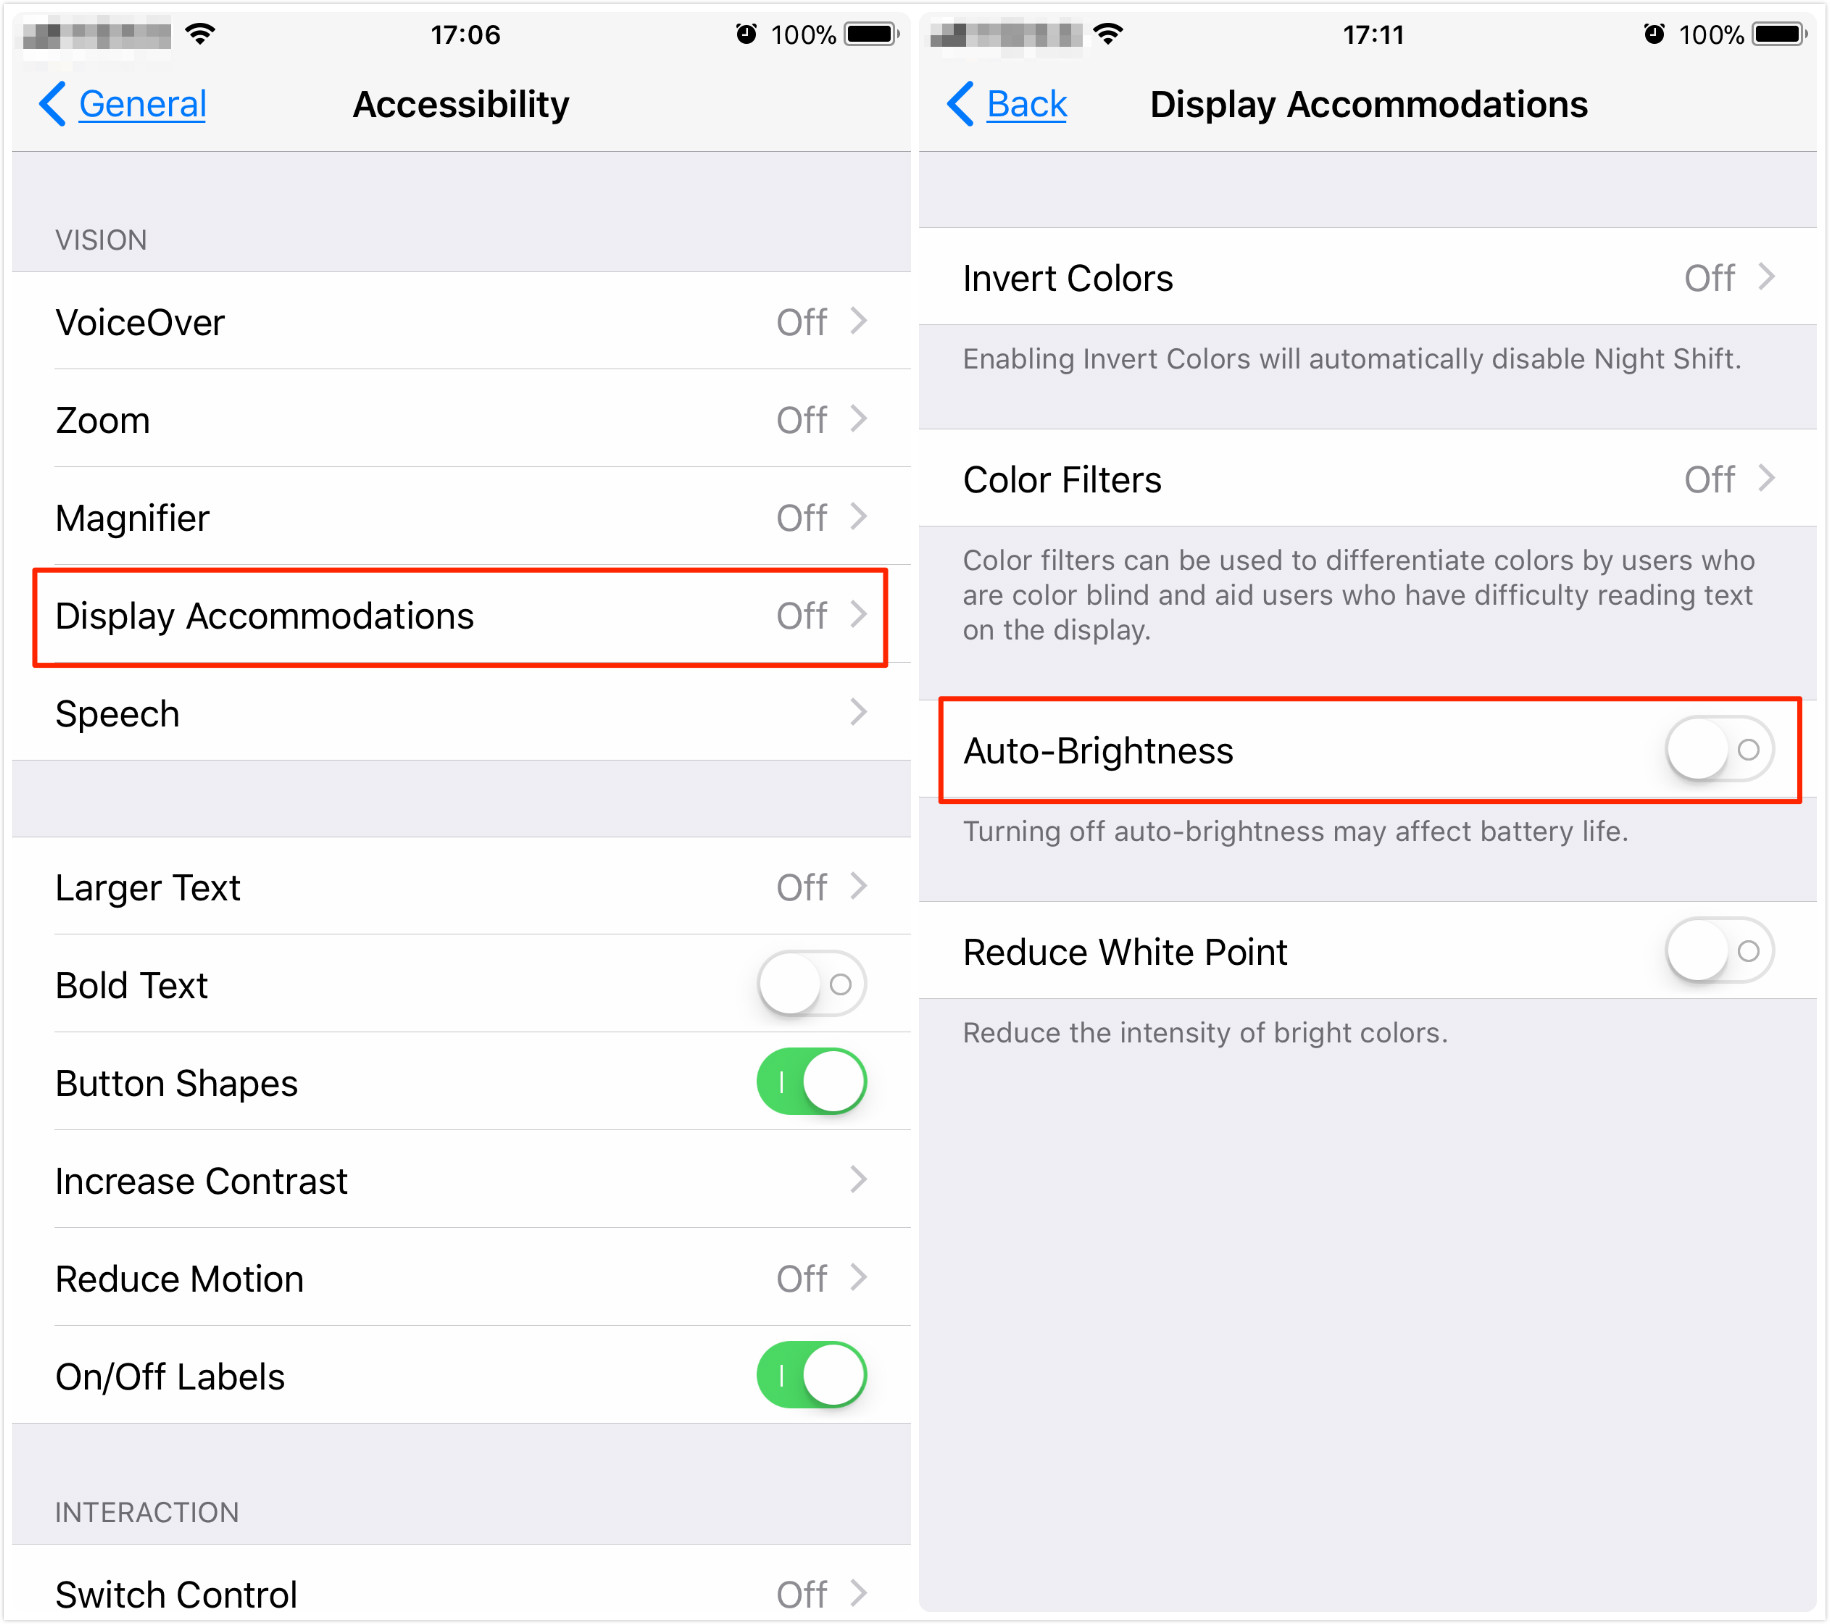 How to Turn Off Auto-Brightness in iOS 11 on iPhone/iPad – Step 1